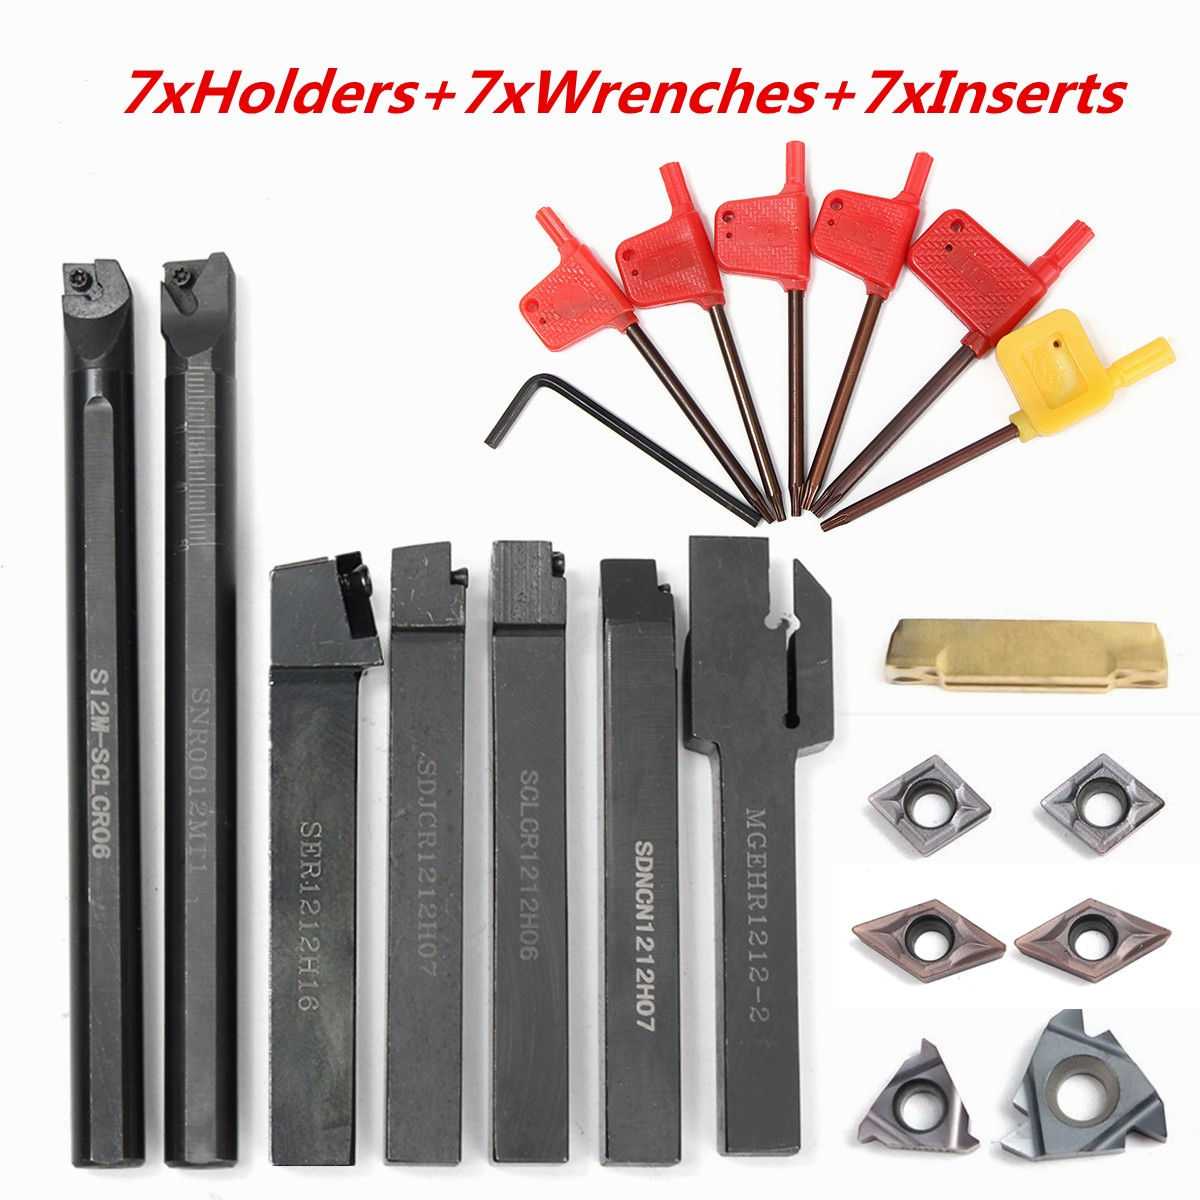 21pcs/set 12MM Lathe Turning Tool Holder Boring Bar+ DCMT CCMT Carbide Inserts + Wrench For Lathe Turning Tool21pcs/set 12MM Lathe Turning Tool Holder Boring Bar+ DCMT CCMT Carbide Inserts + Wrench For Lathe Turning Tool